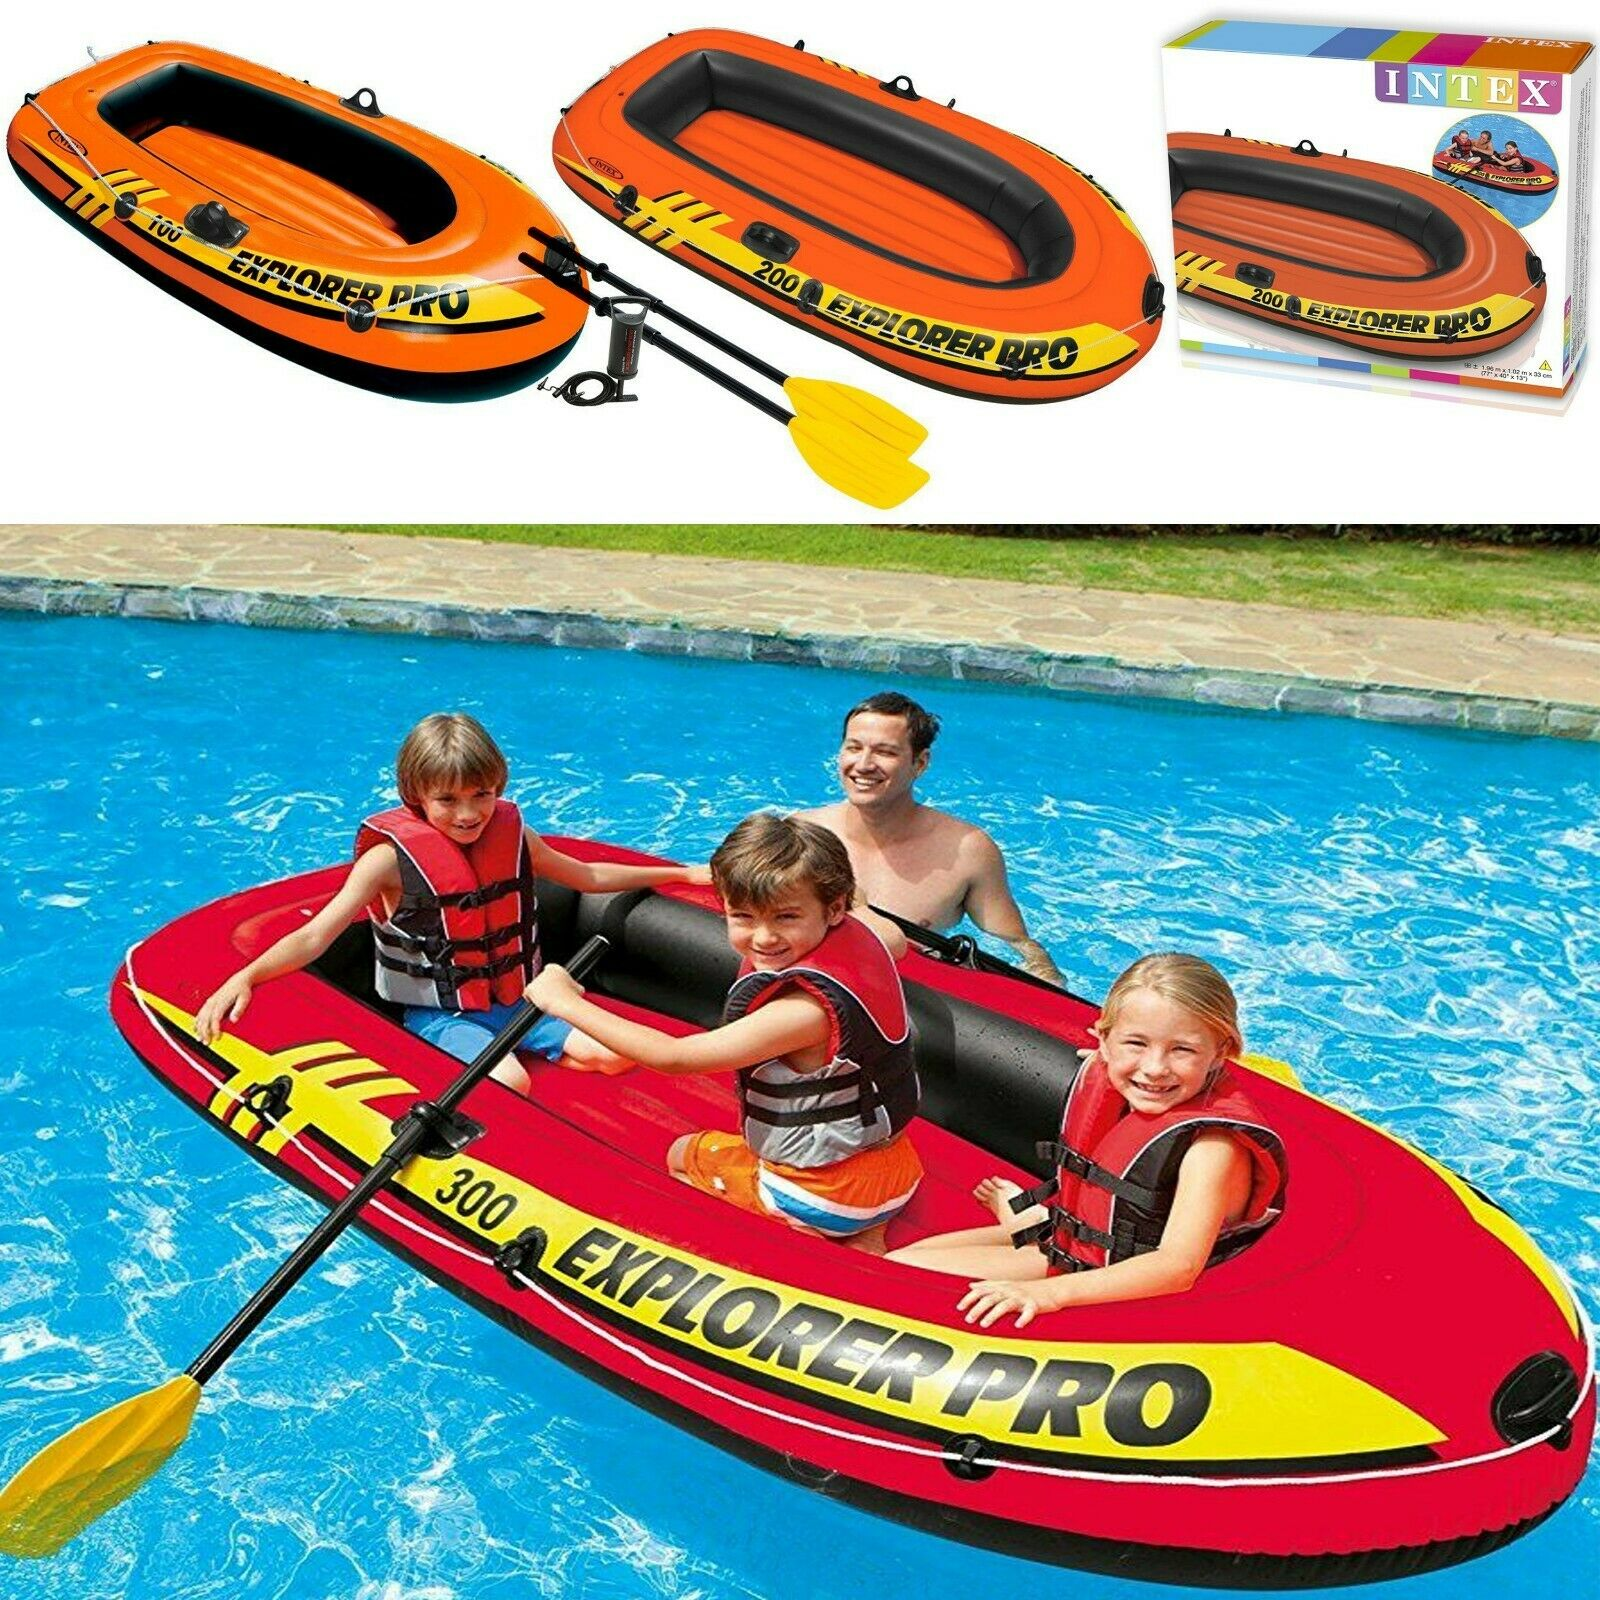 Intex Explorer Pro Dingy Inflatable Rubber Boat Air Pump Paddles 1 2 3 Person